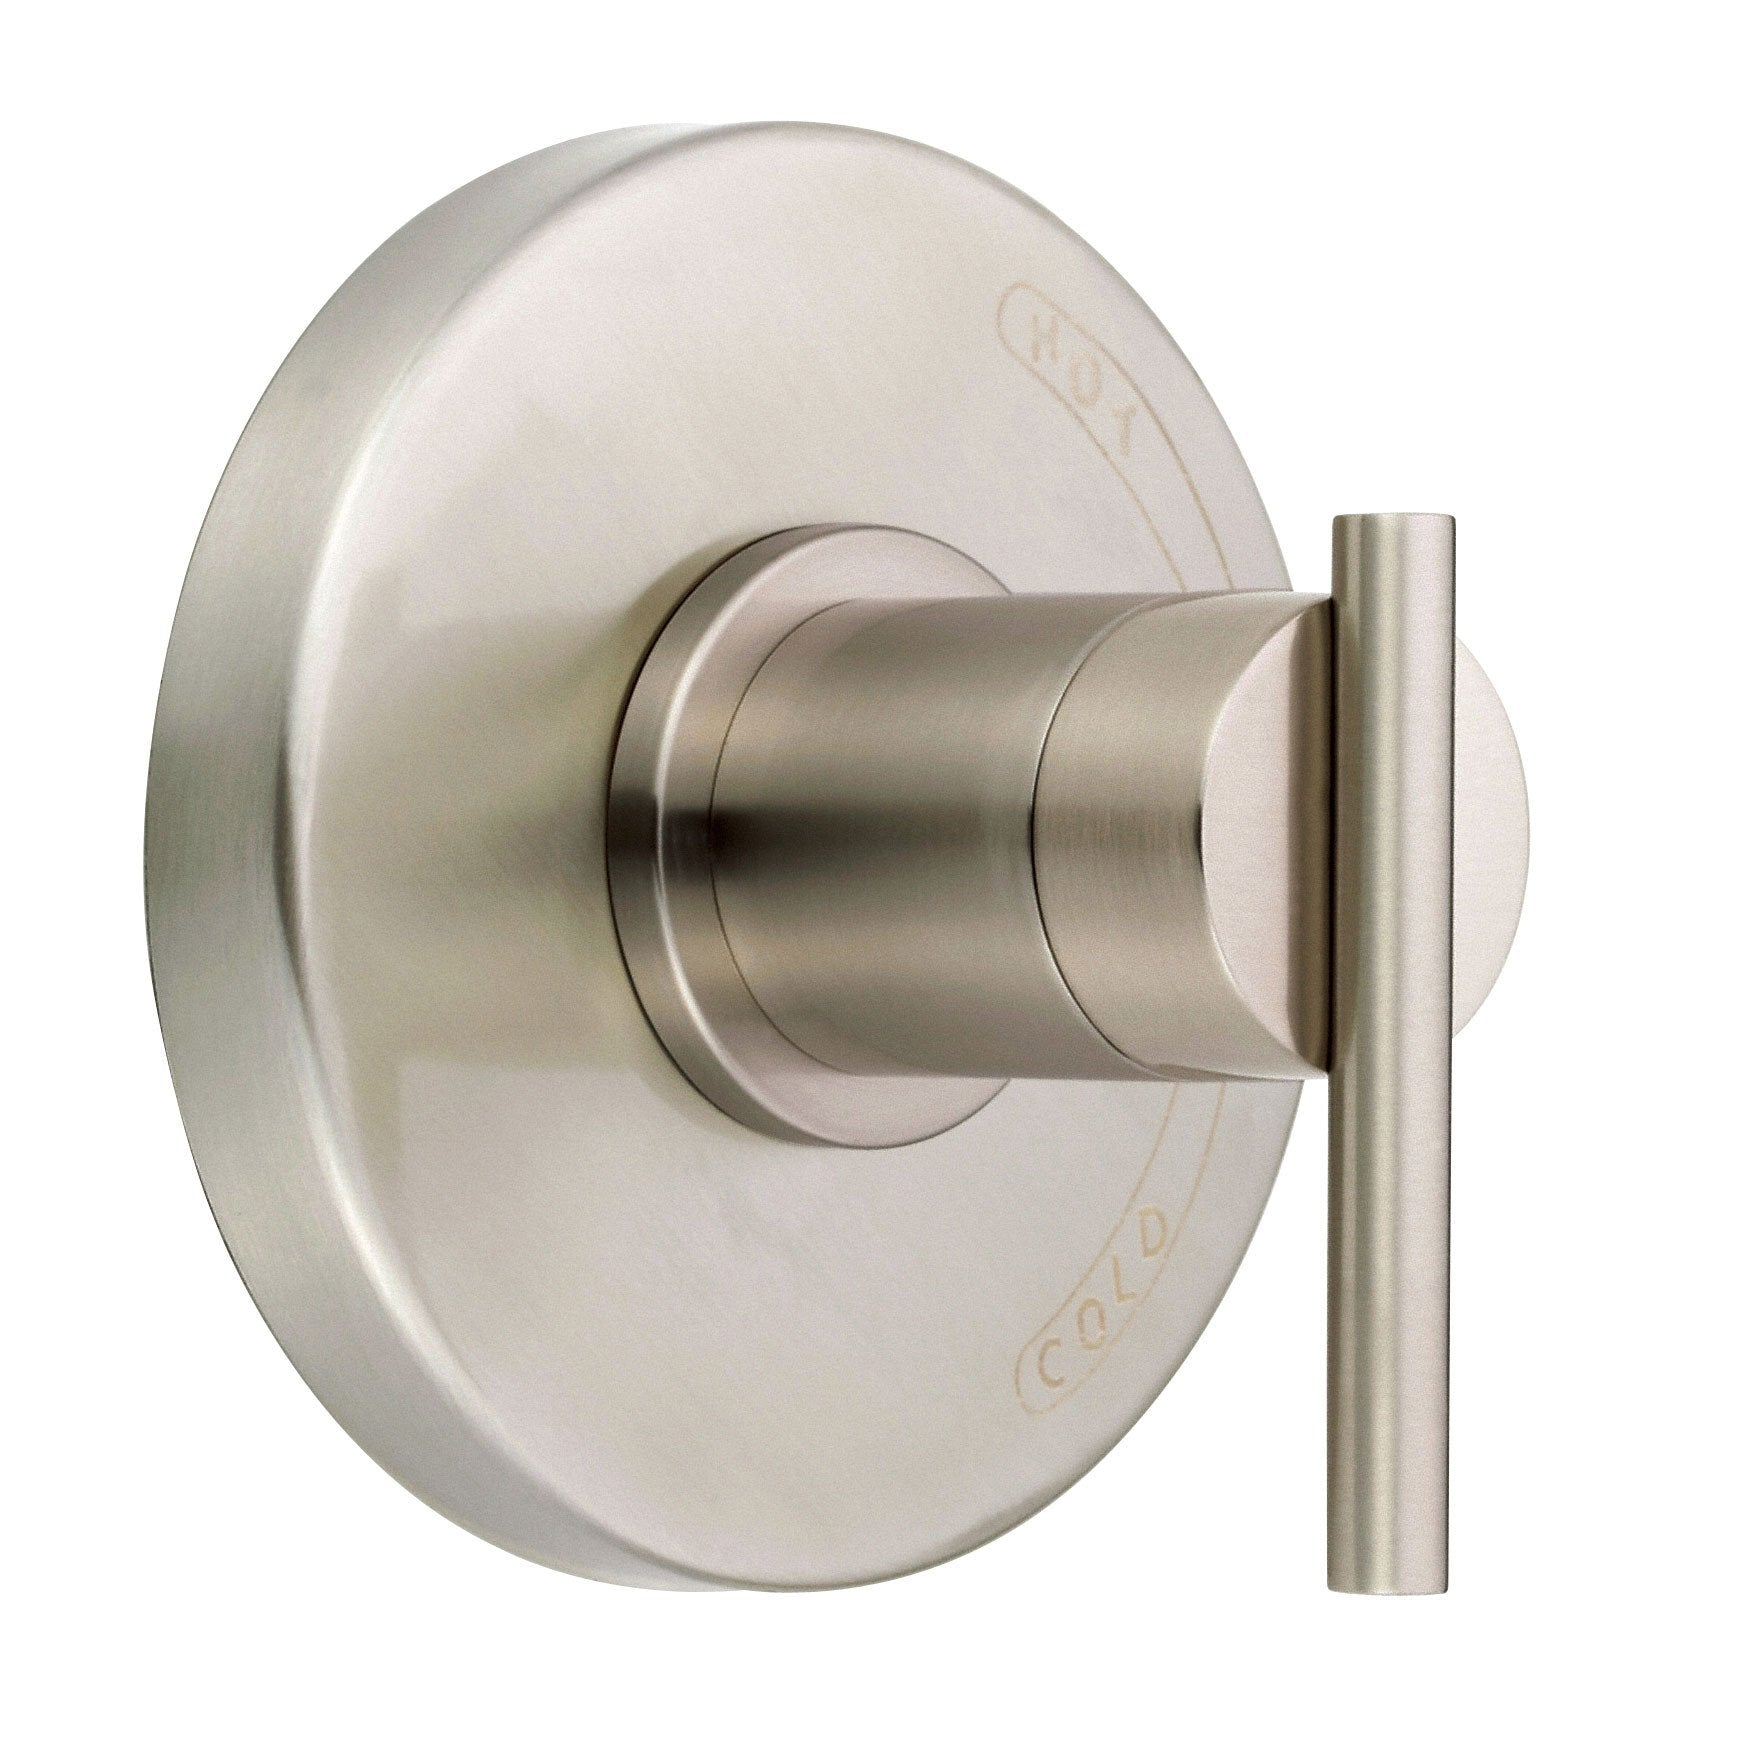 Danze Parma Brushed Nickel Modern Single Handle Shower Faucet ...